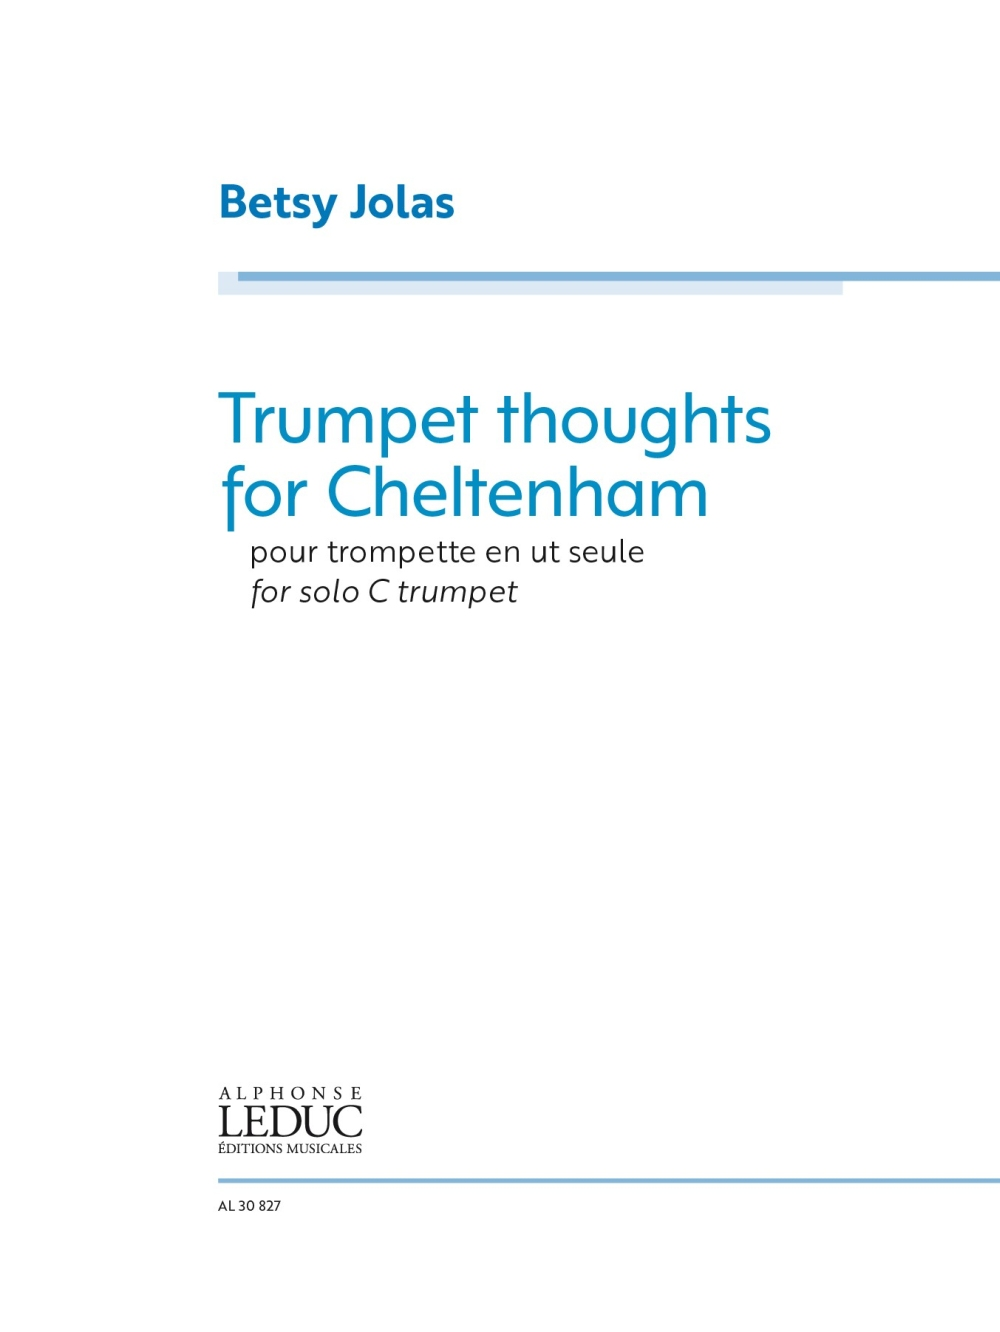 Betsy Jolas: Trumpet thoughts for Cheltenham for trumpet: Trumpet Solo: